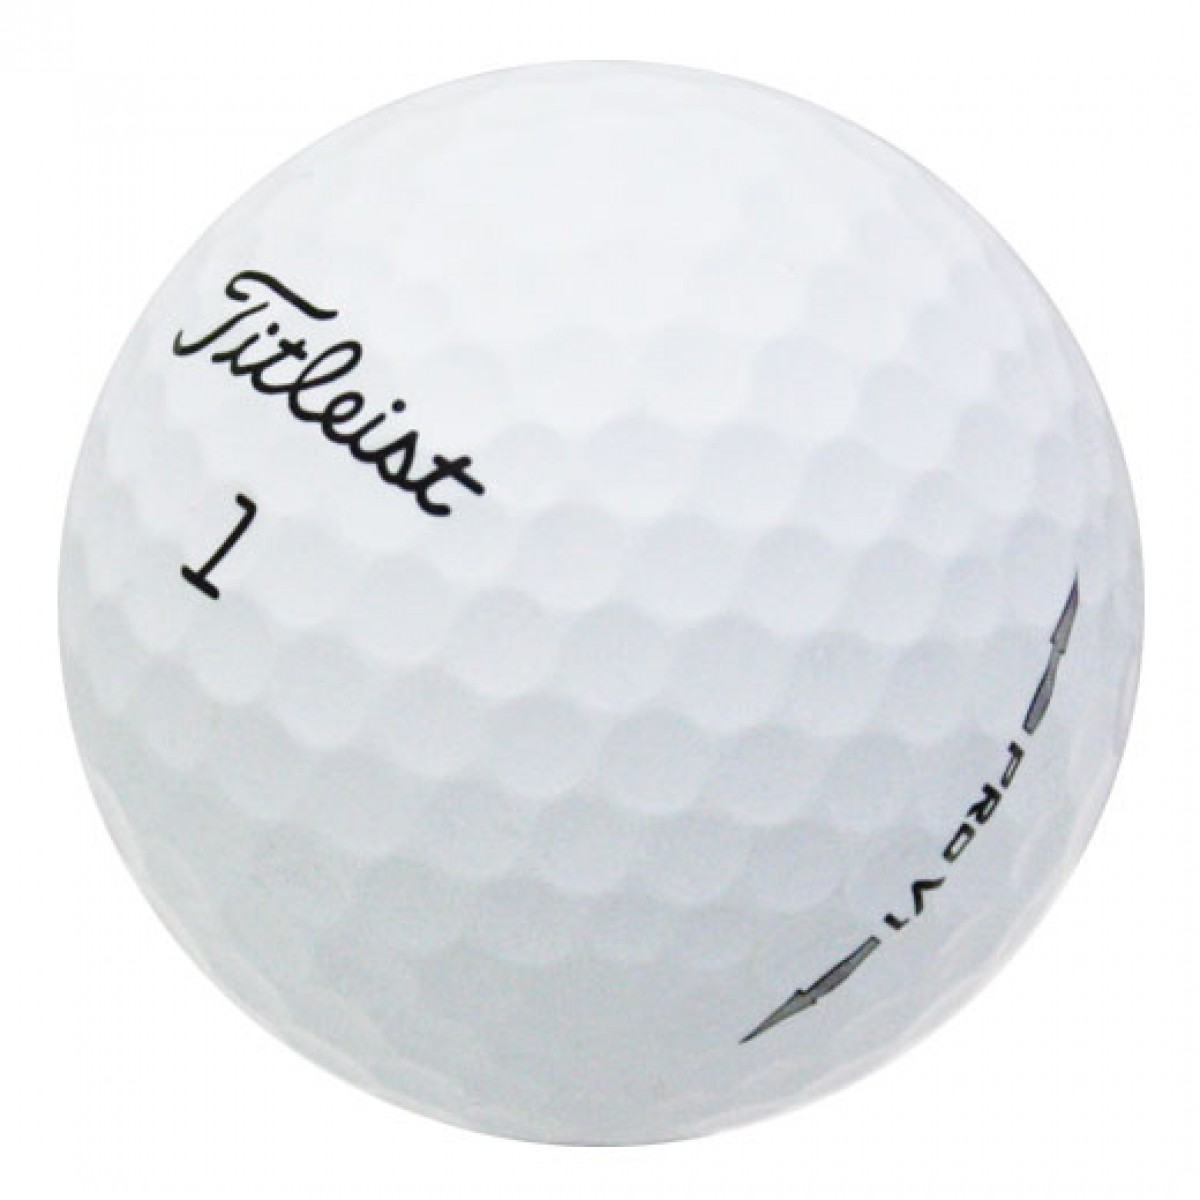 Titleist Pro V1 - Good Quality - 24 Golf Balls